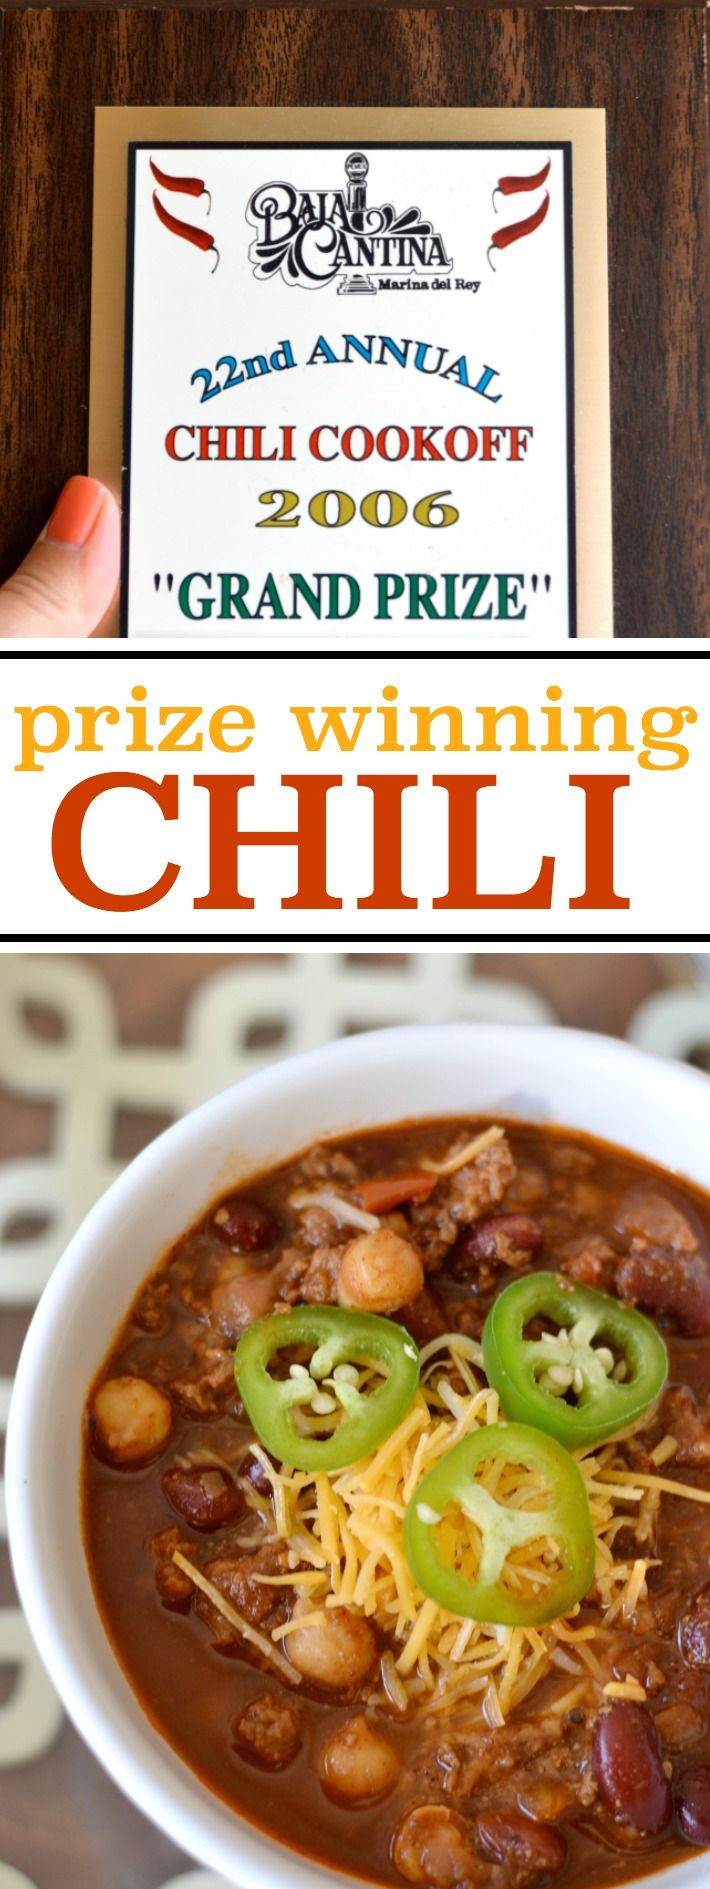 I've been making this chili recipe to rave reviews for 15 years, and I even won a local chili cook-off! I'm finally spilling the beans about how I make my famous chili.